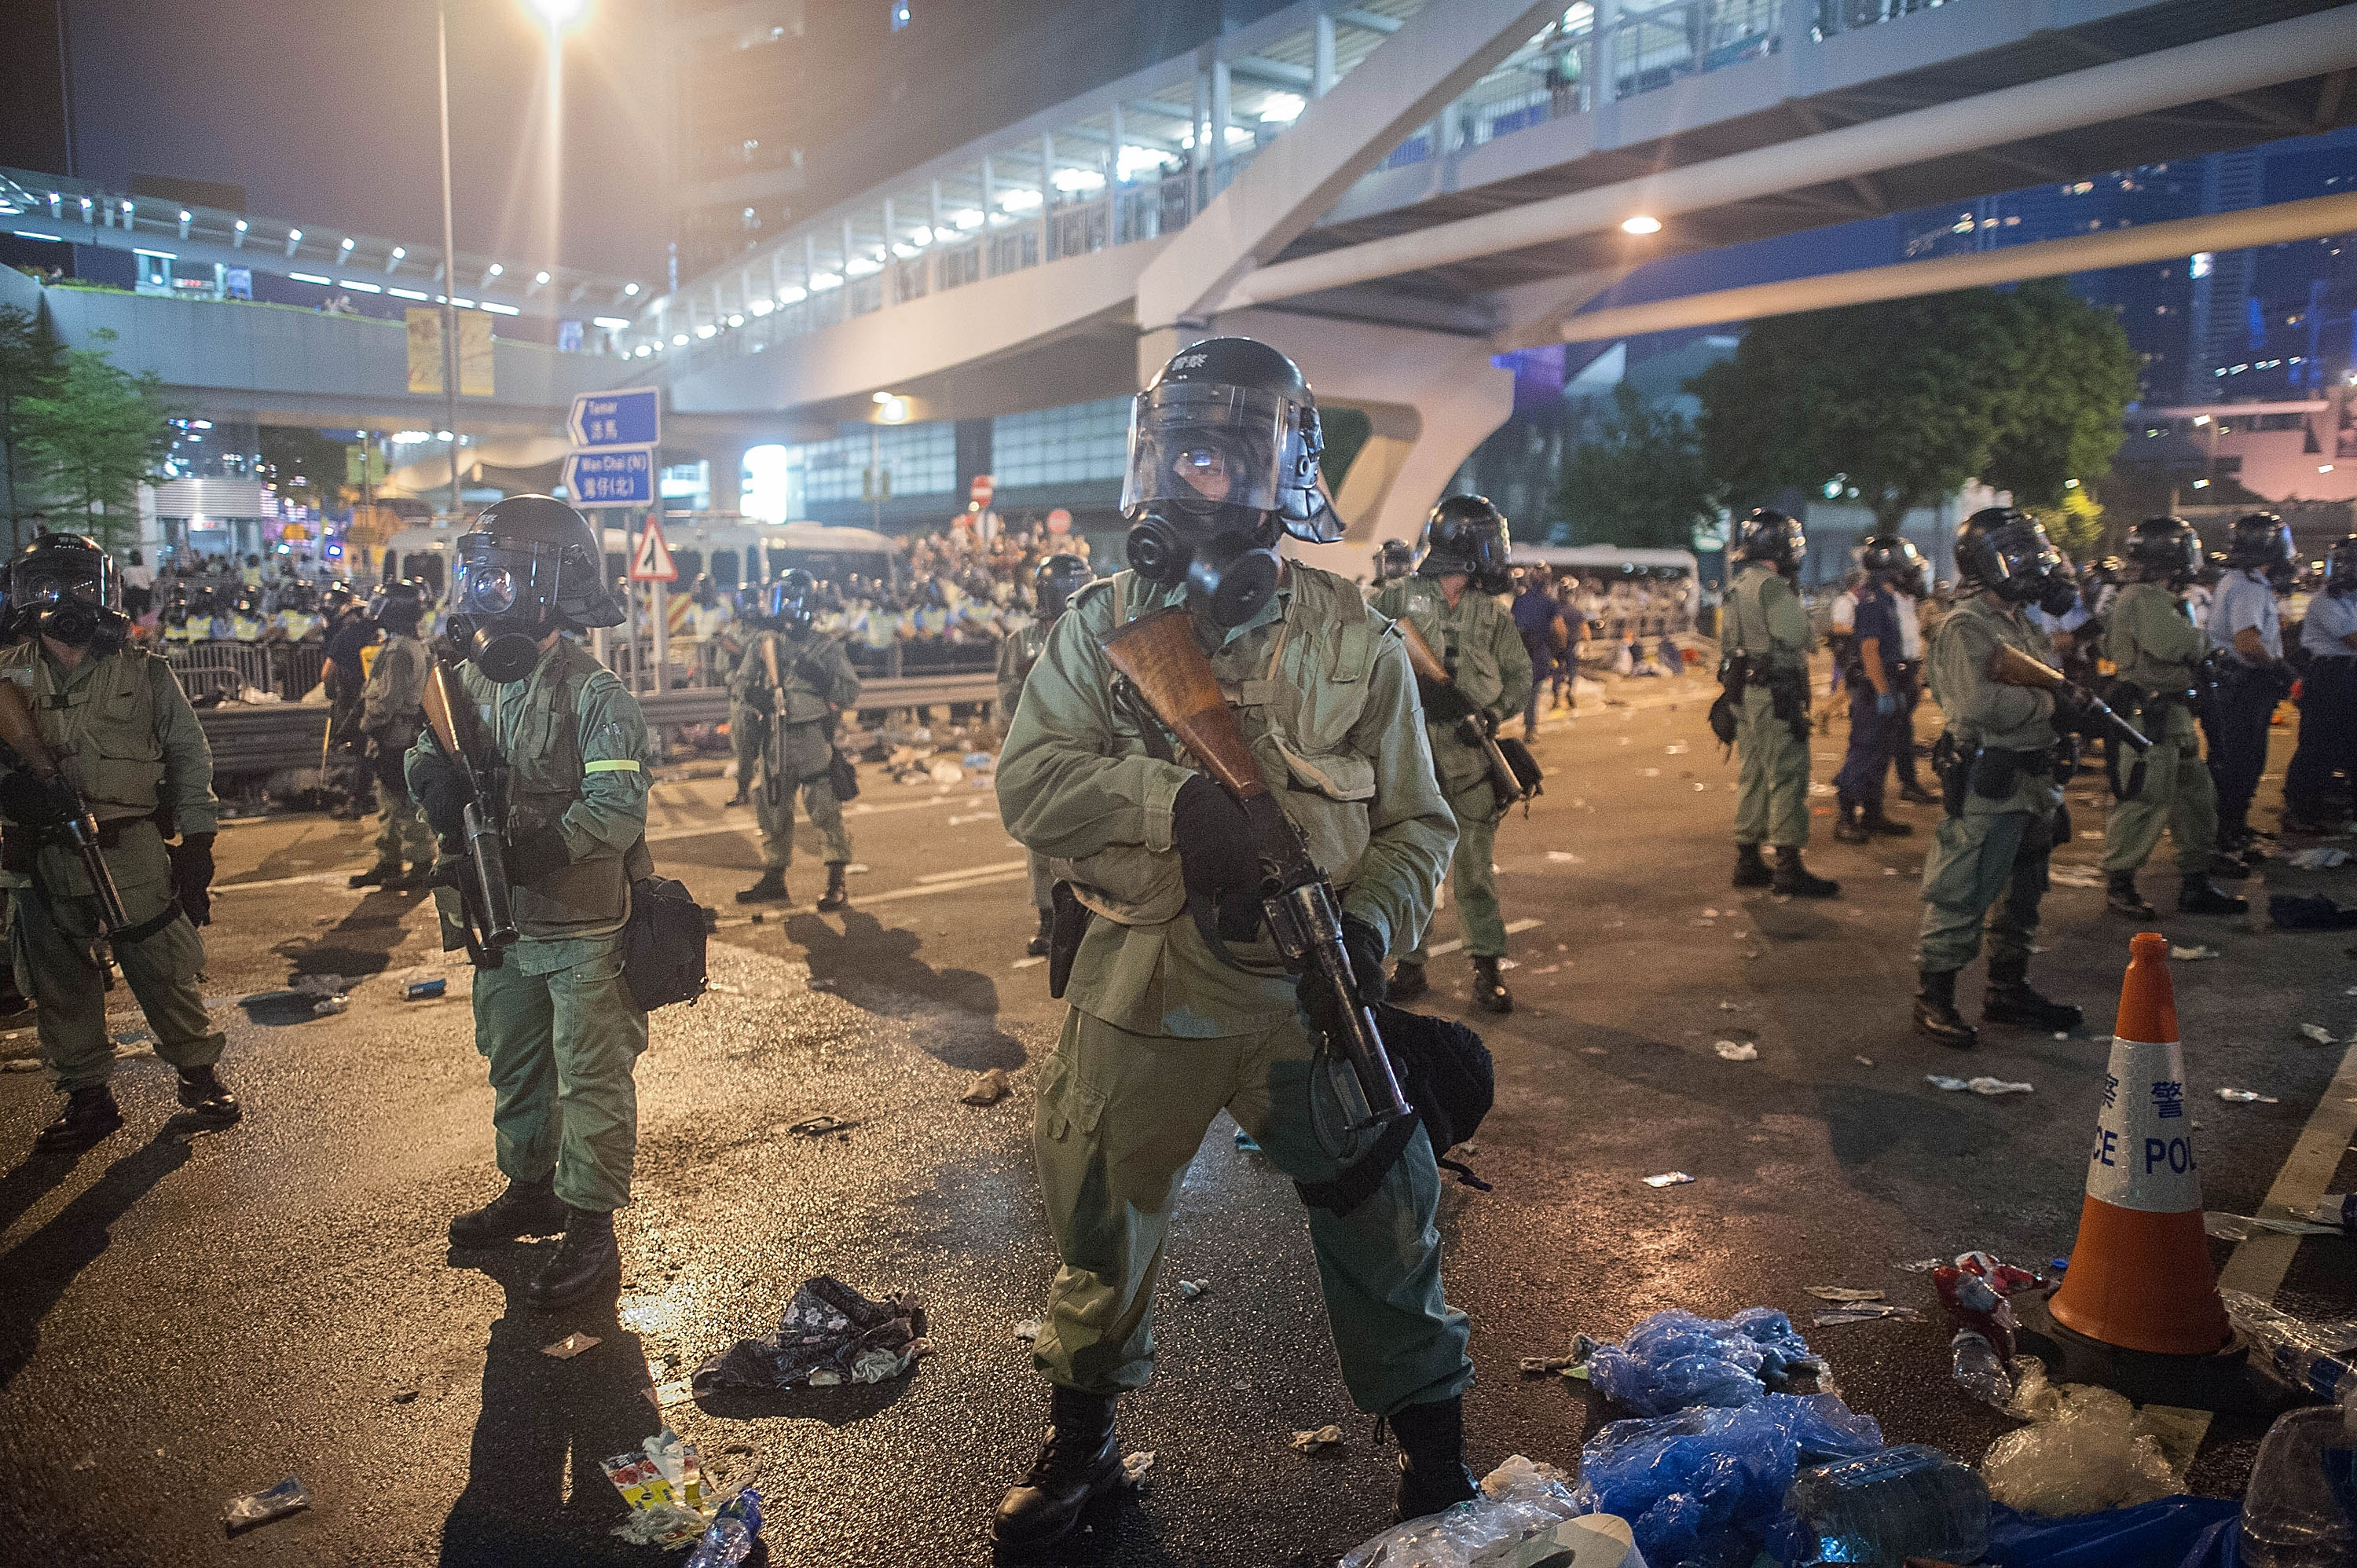 Riot police stand guard outside Hong Kong Government buildings on September 28, 2014 in Hong Kong.